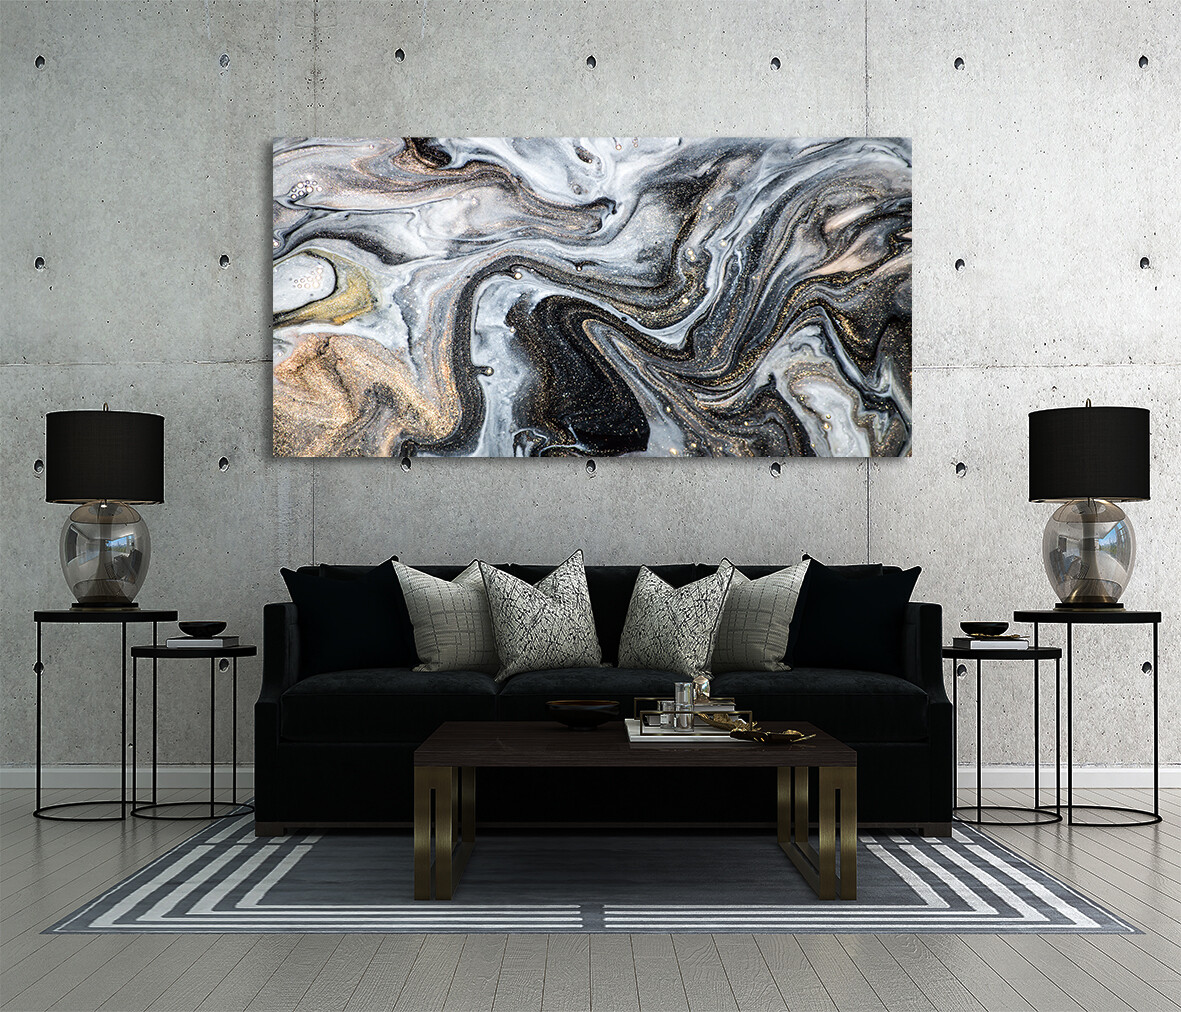 Fluid Arts  - Modern Luxury Wall art Printed on Acrylic Glass - Frameless and Ready to Hang